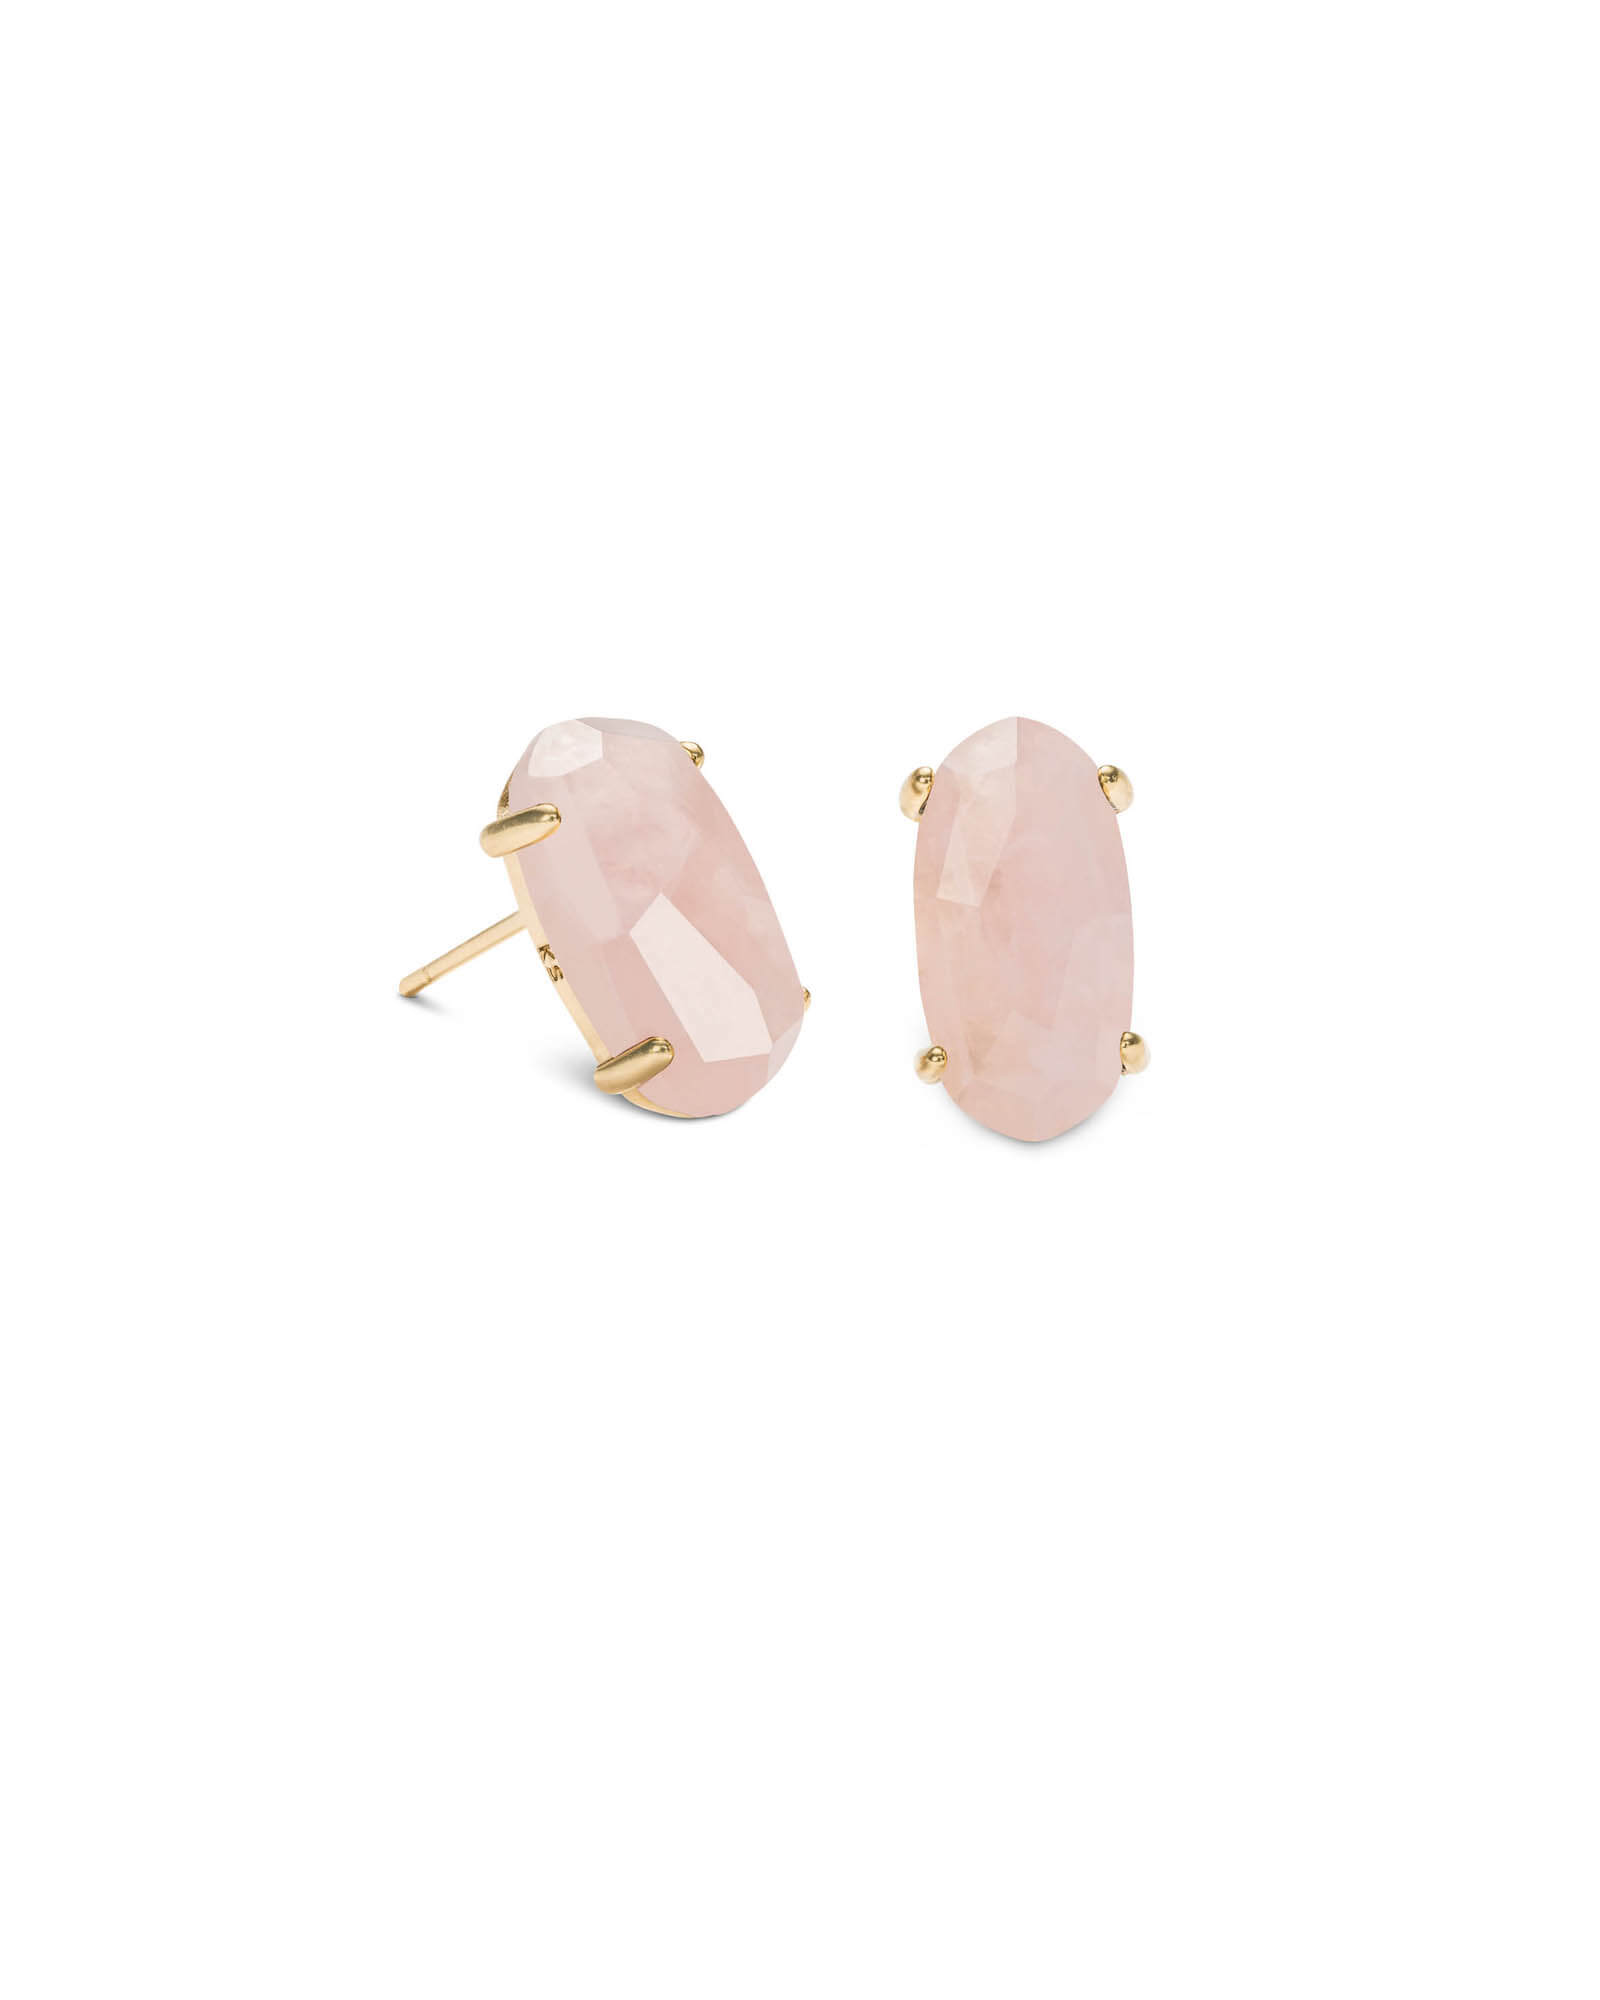 Betty Gold Stud Earrings in Rose Quartz